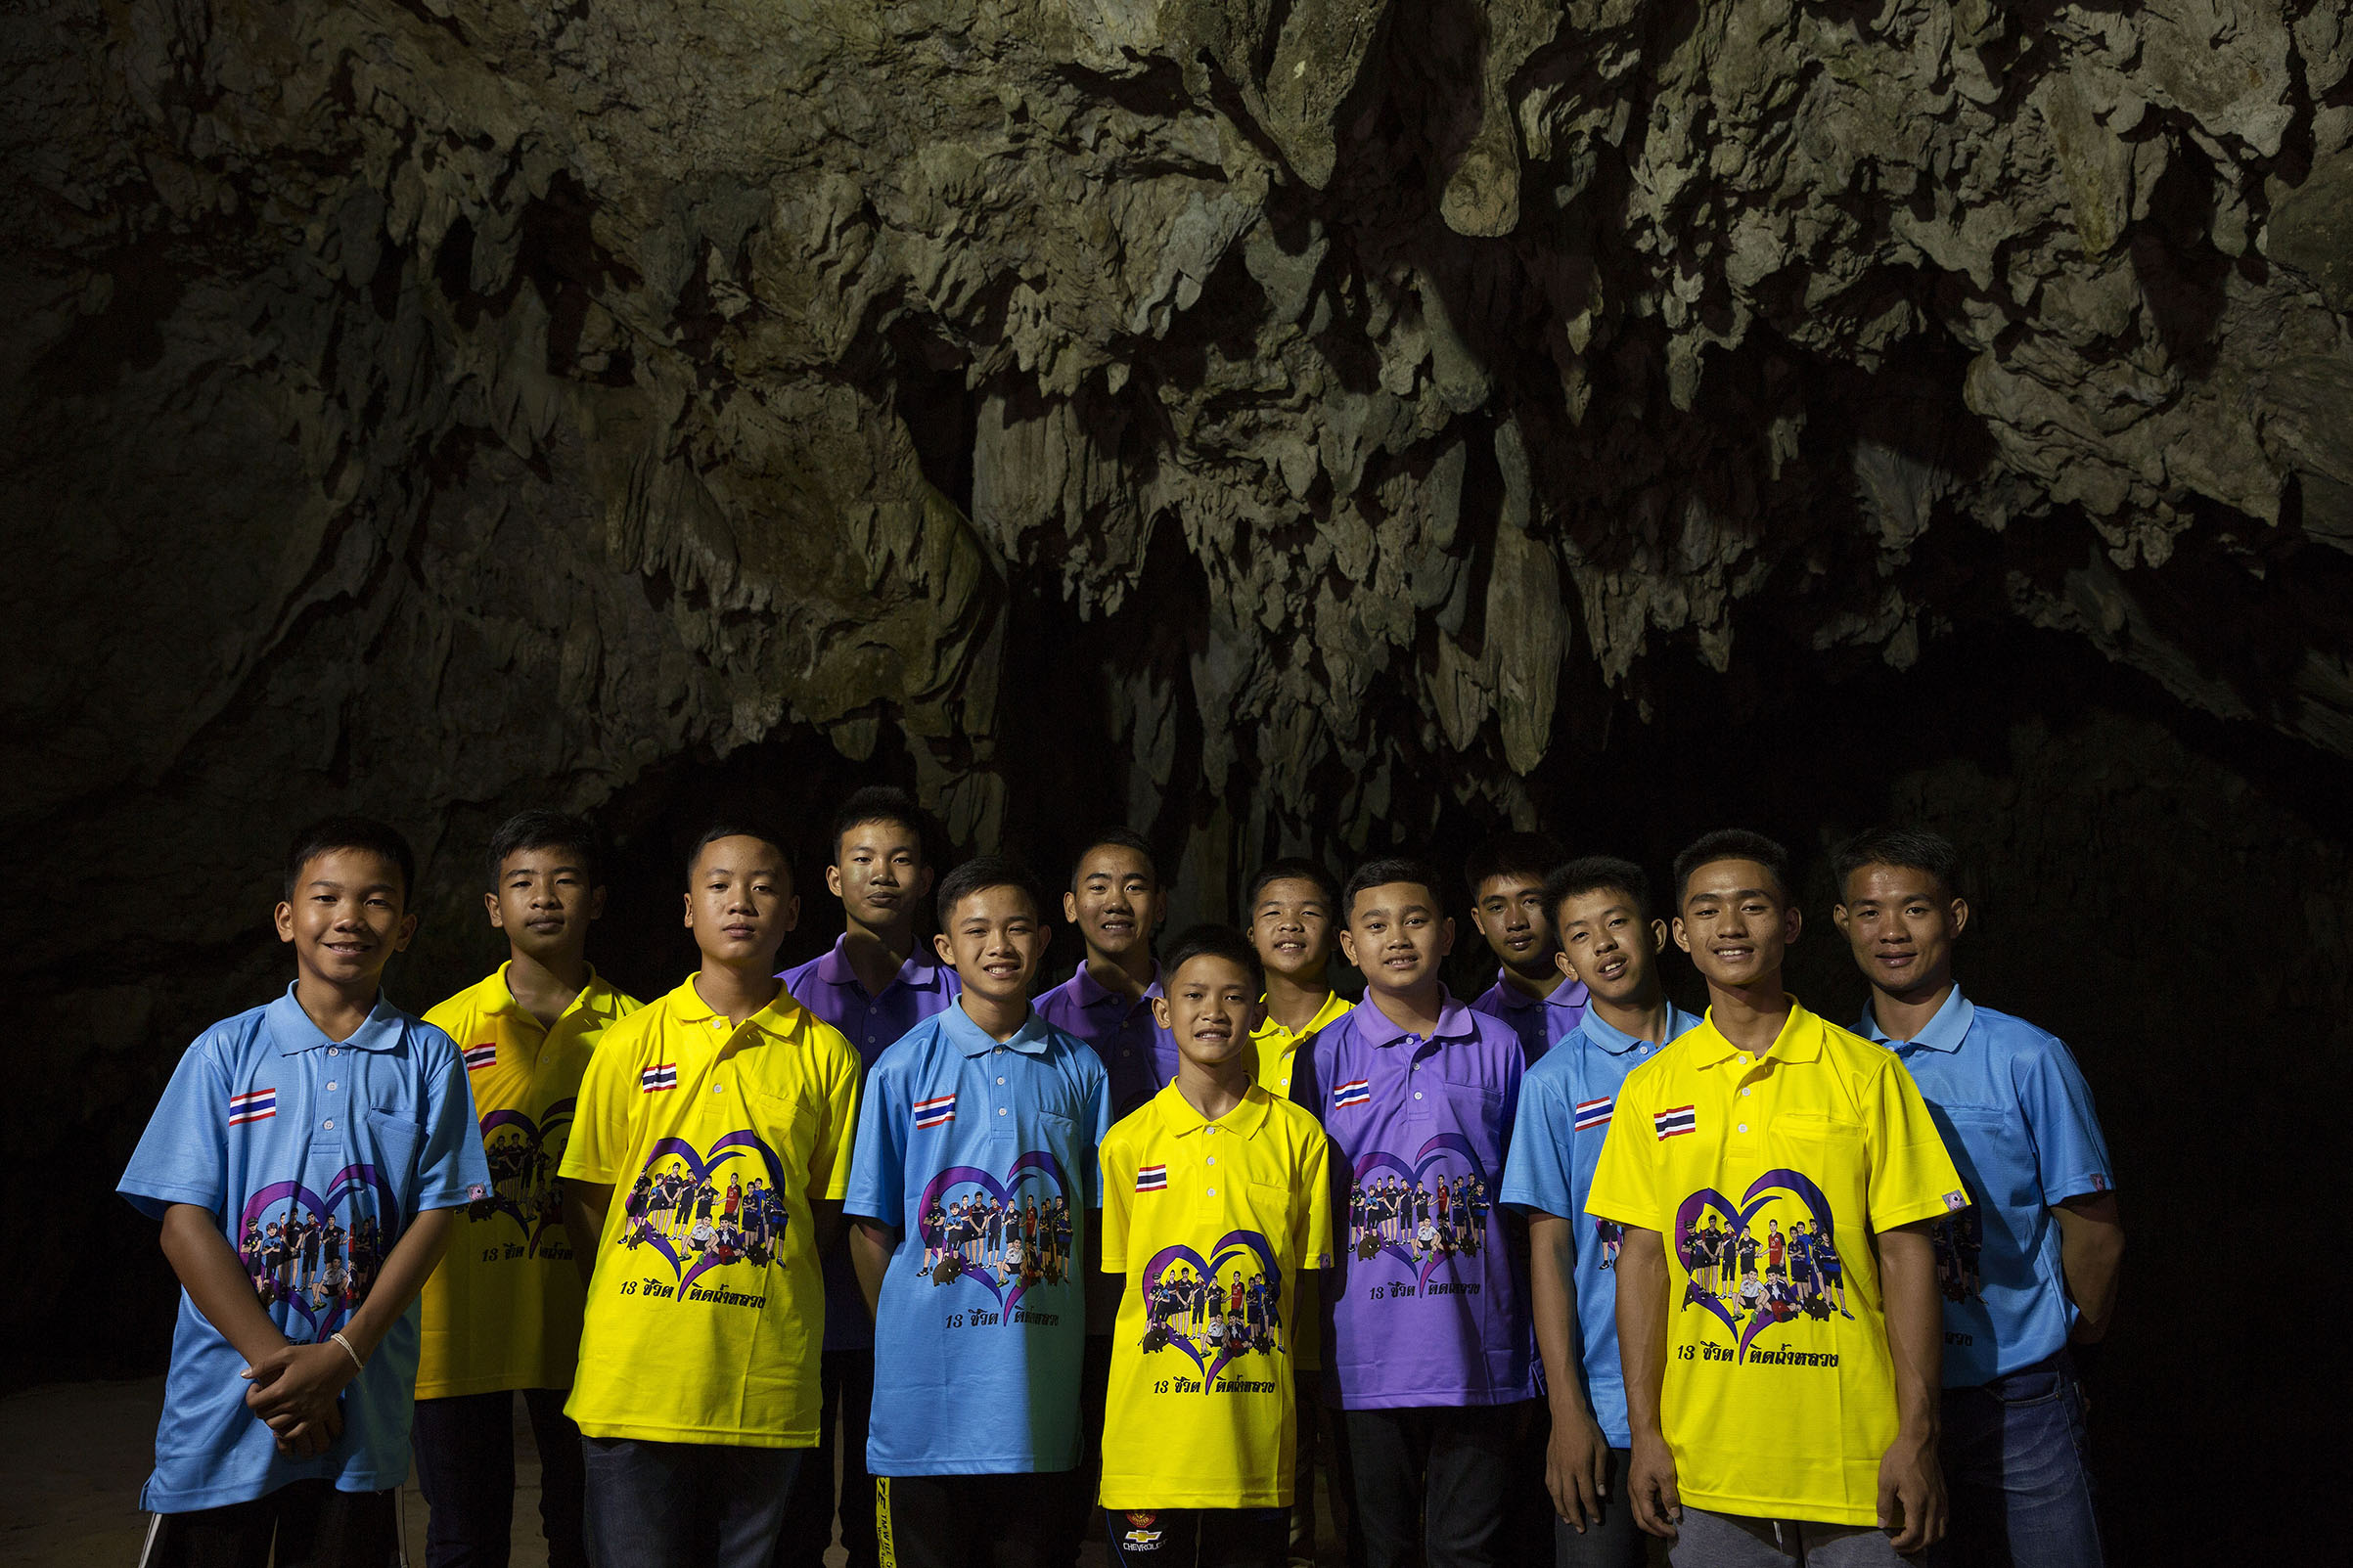 Nearly six months after the rescue, the team poses at the entrance to Tham Luang Cave